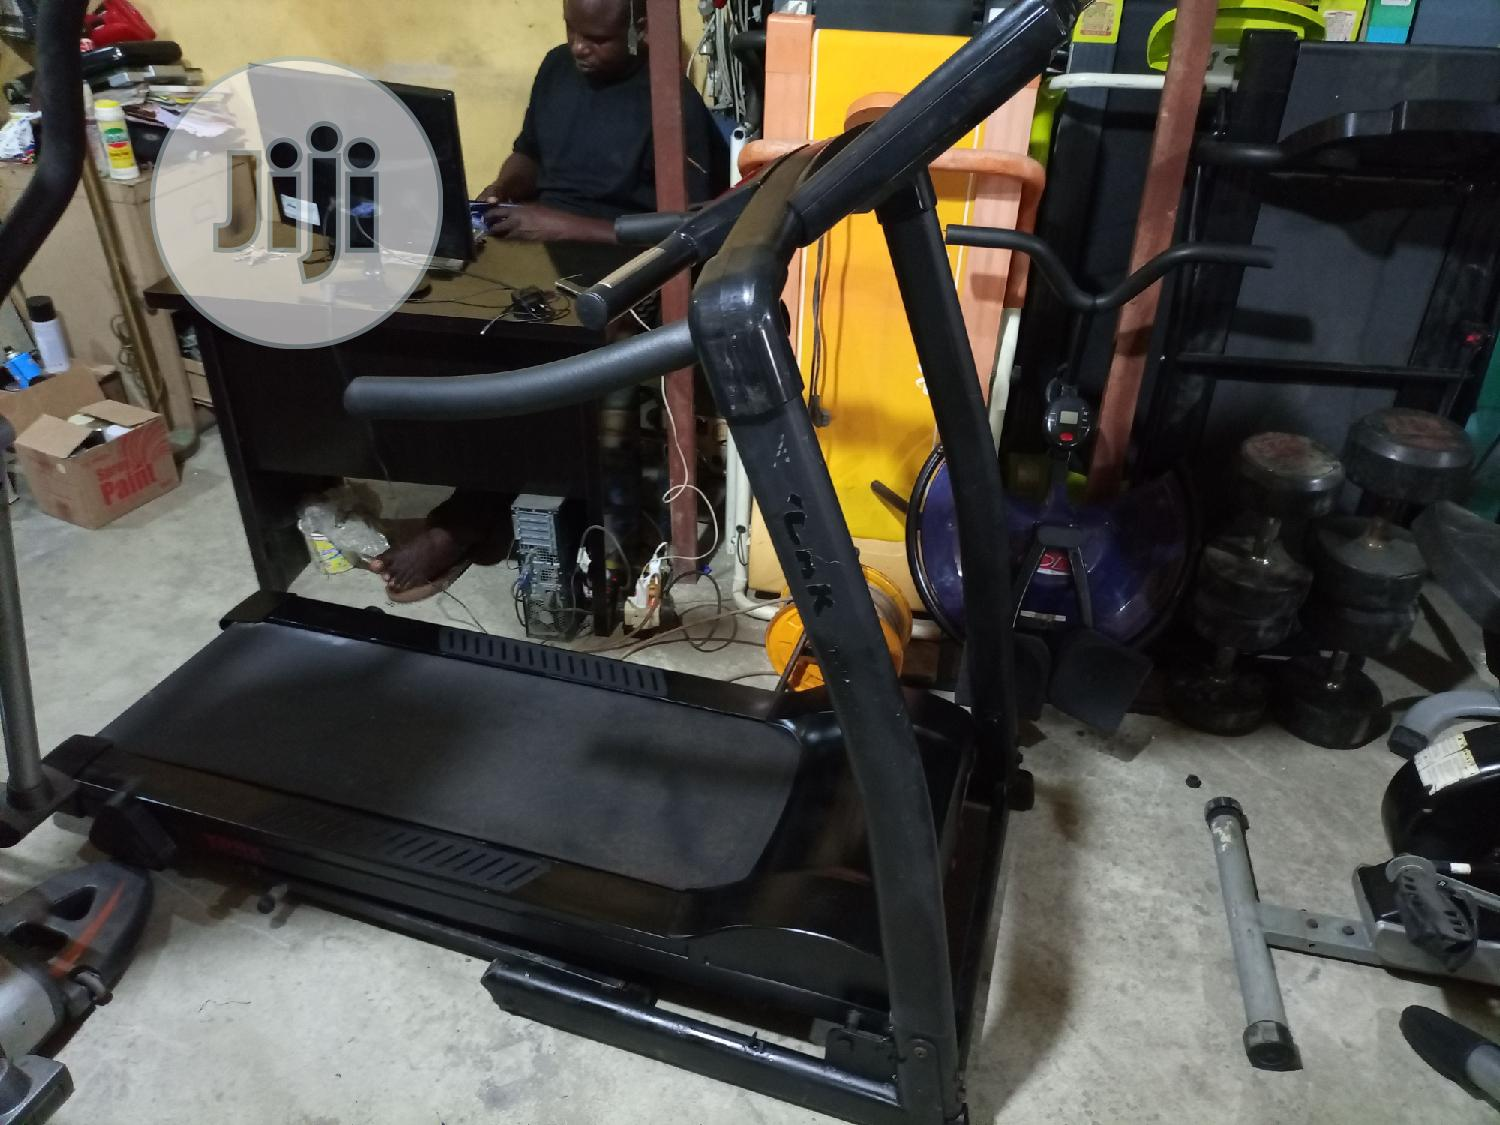 Archive: York Fitness Treadmill